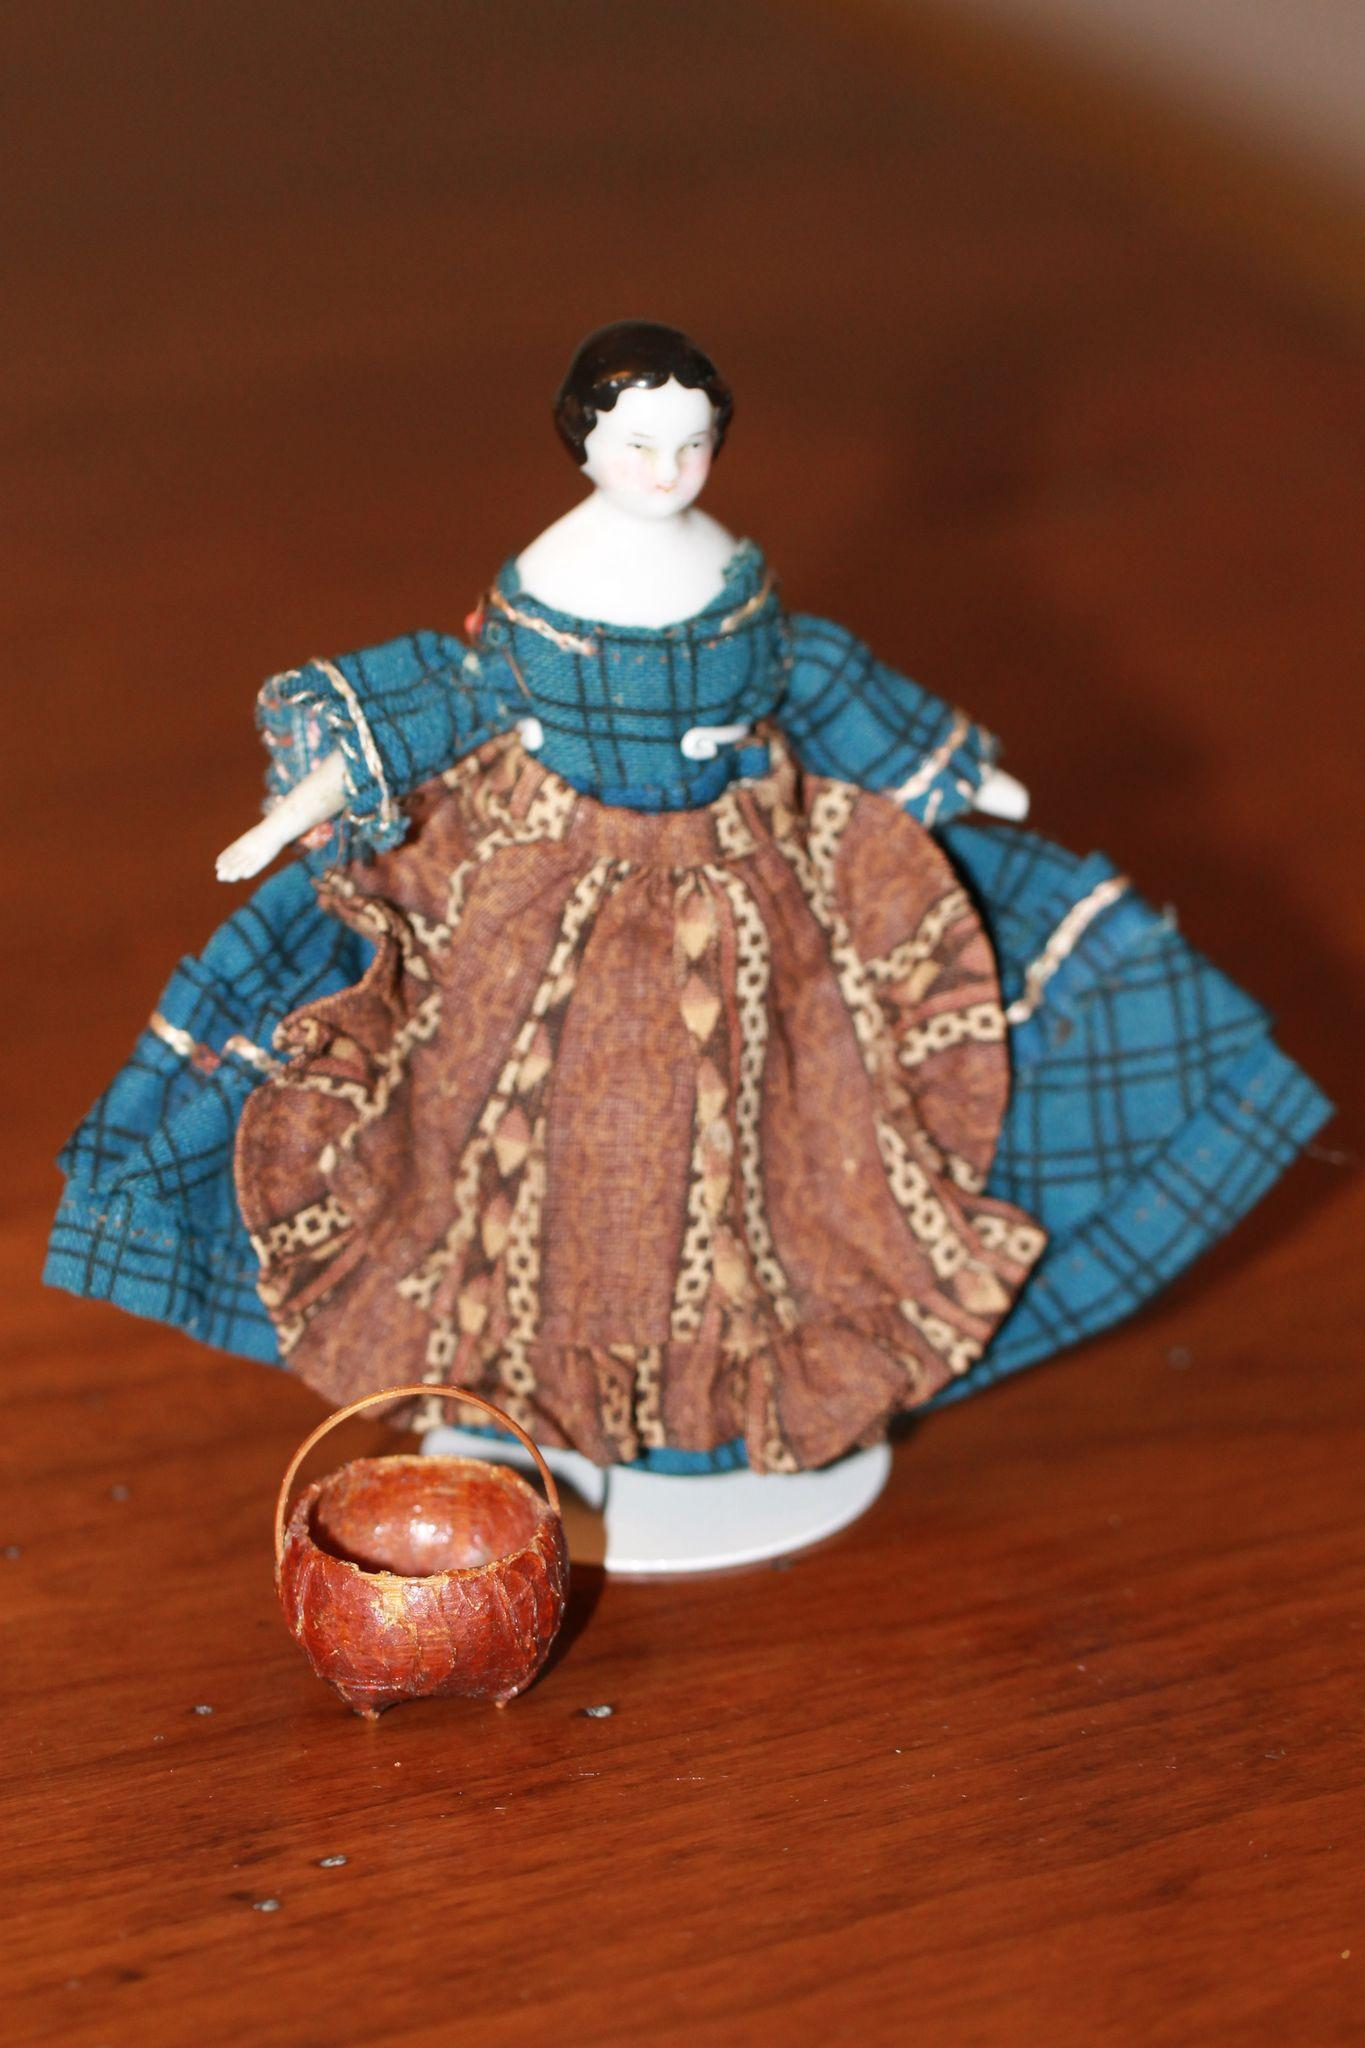 Fabulous Minature Woven Basket for Antique Doll House Dolls